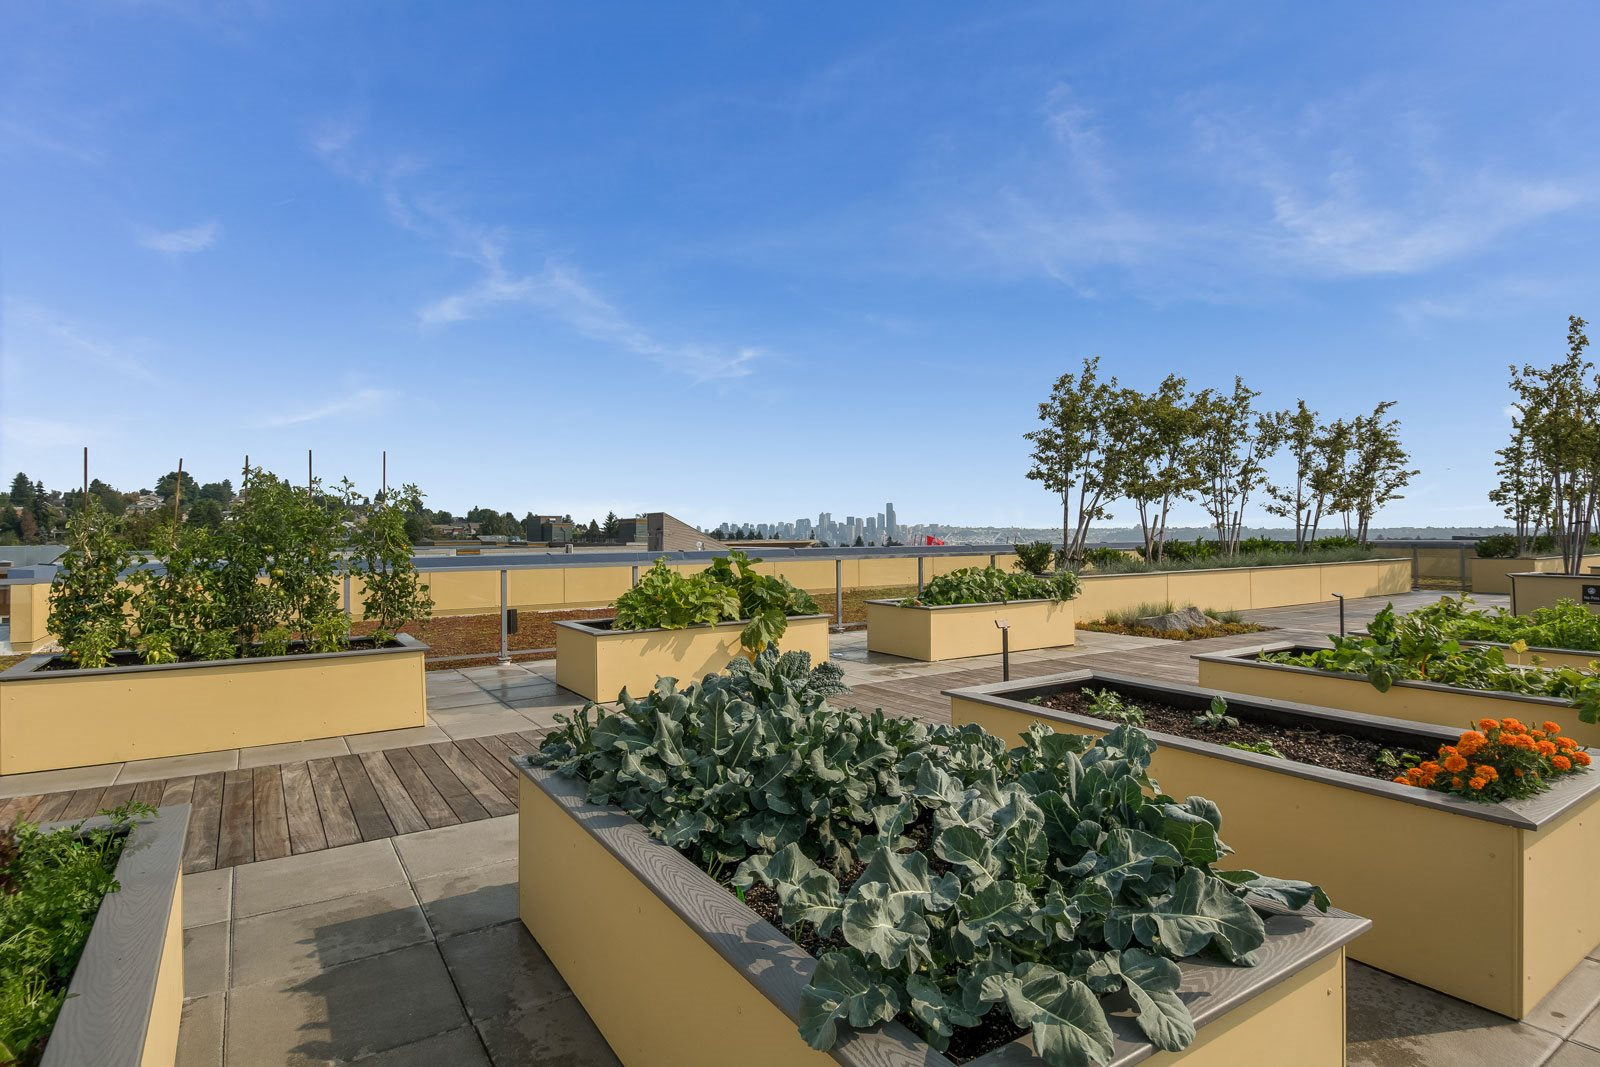 Rooftop Community Garden with Gorgeous Views at The Whittaker, 4755 Fauntleroy Way, Seattle